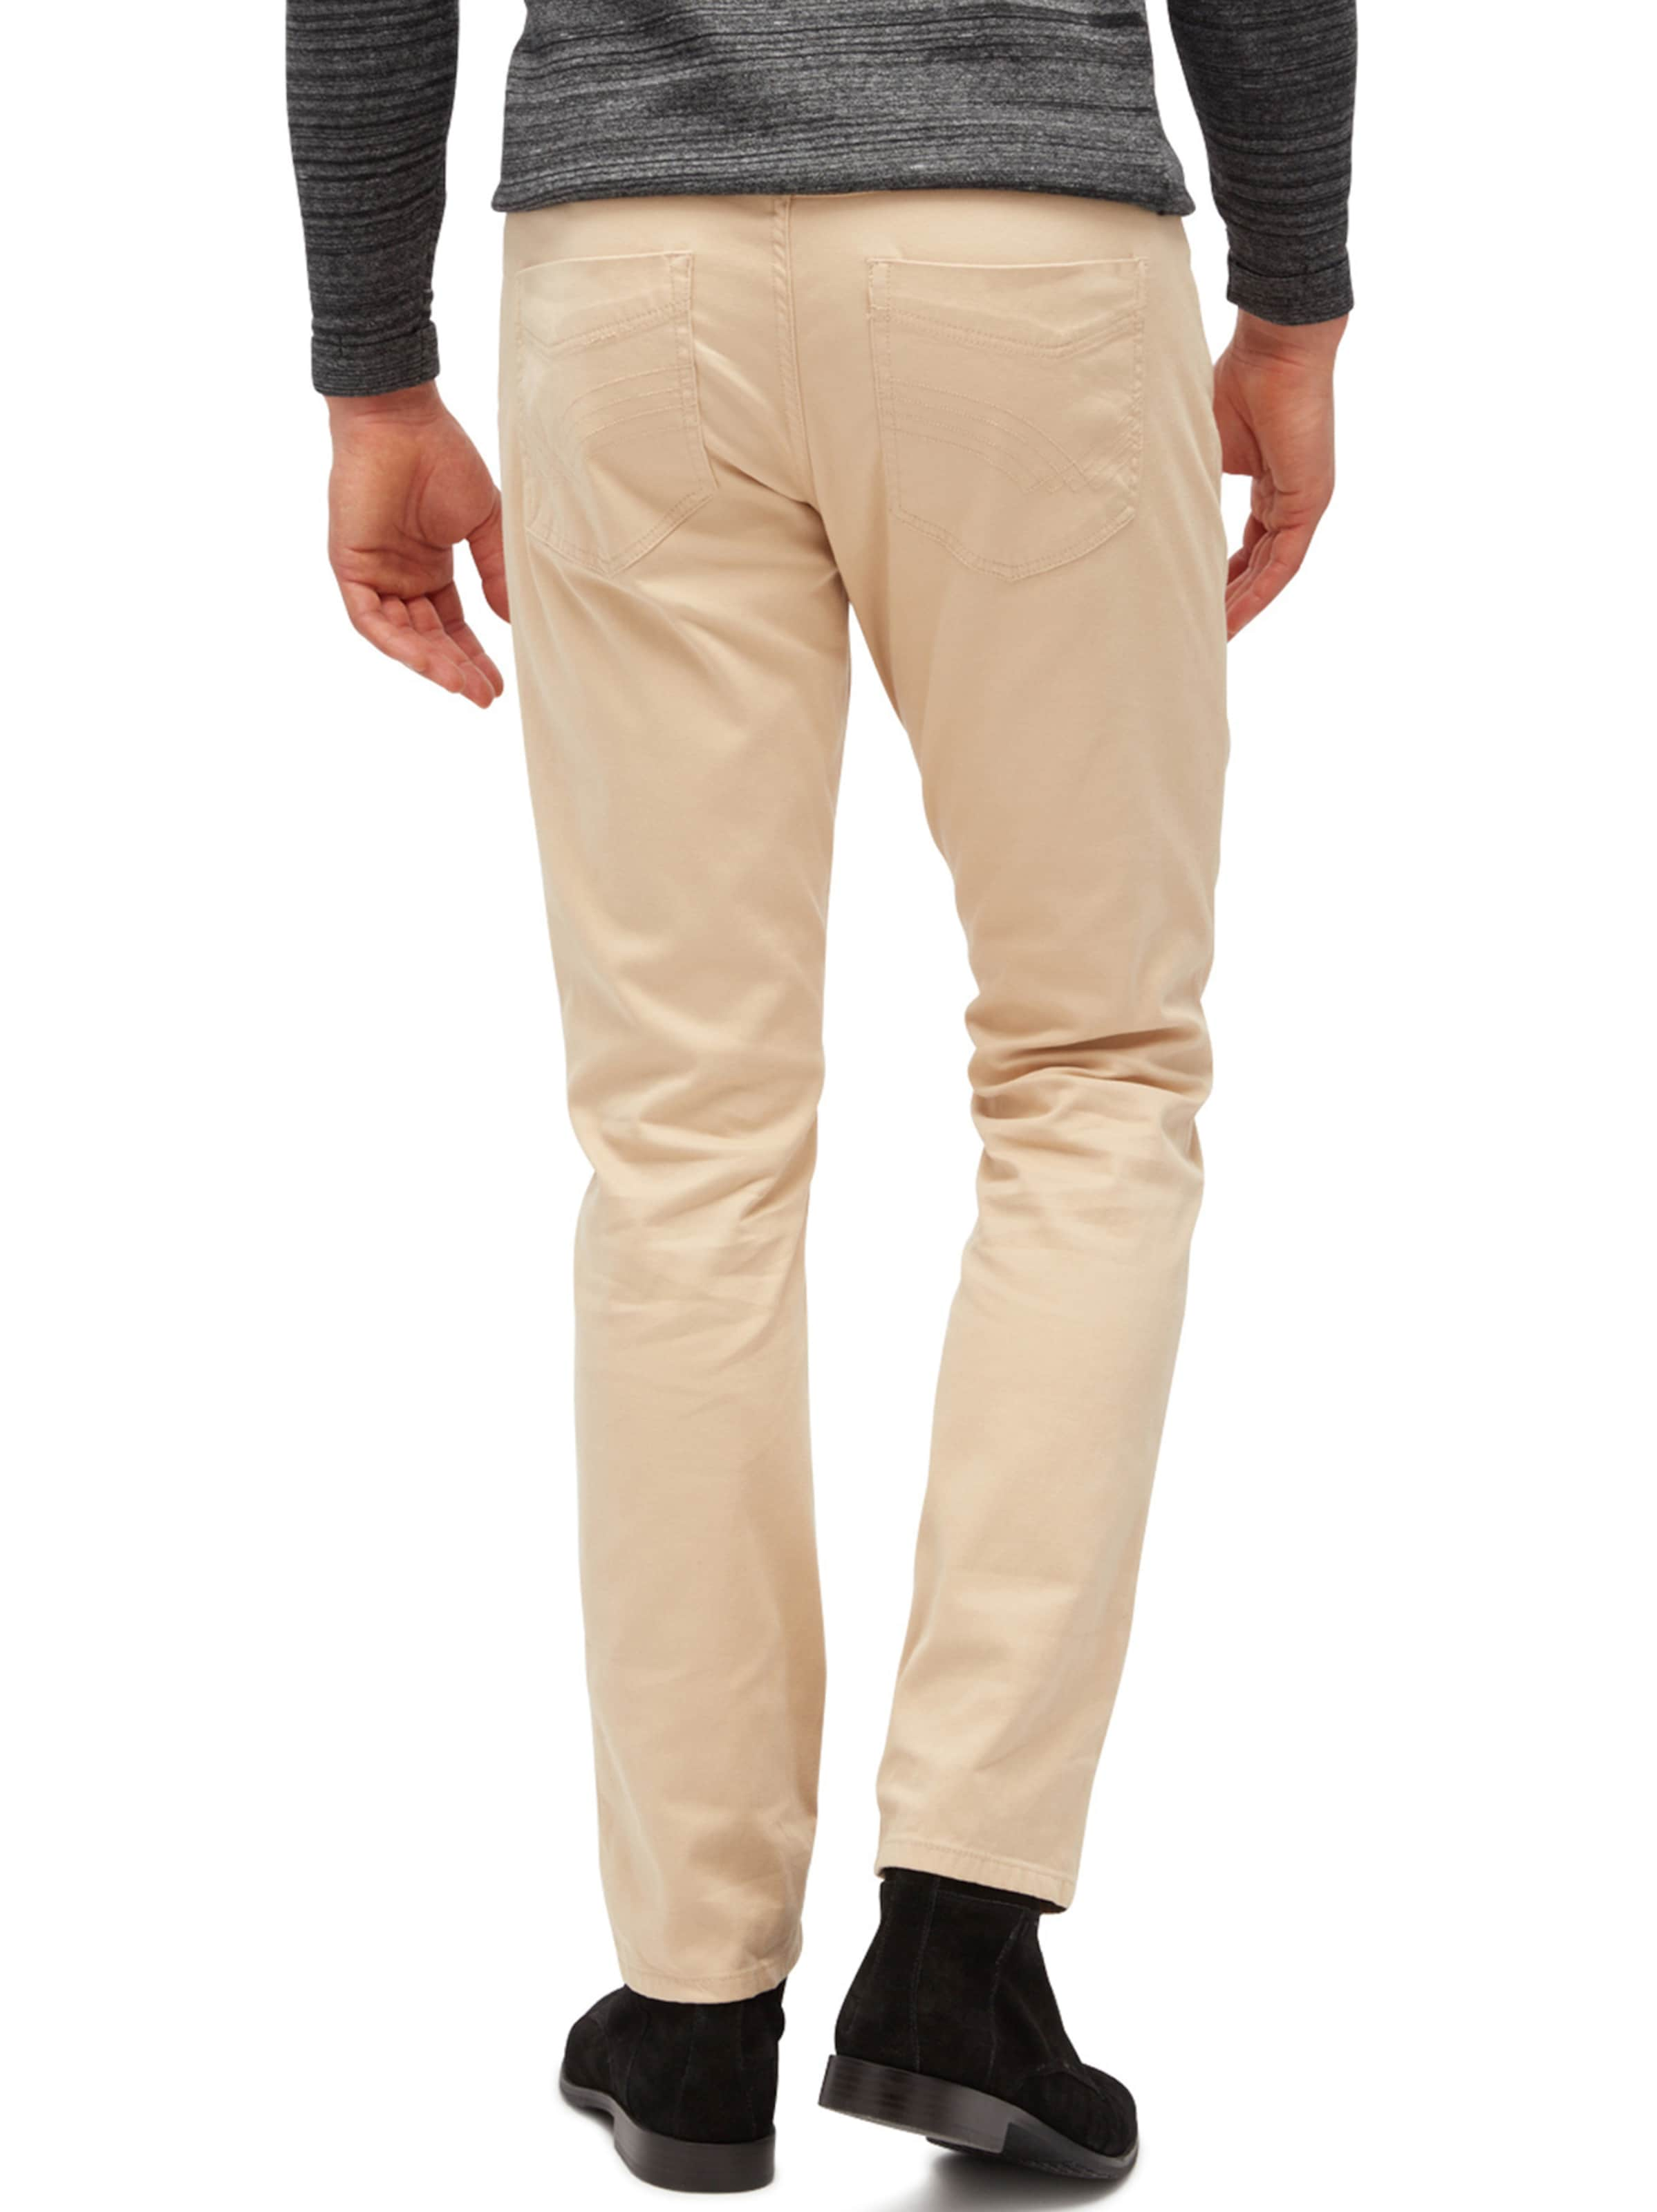 TOM TAILOR pants / trousers Josh Regular Slim Hose Günstige Top-Qualität B6eXTKUOw